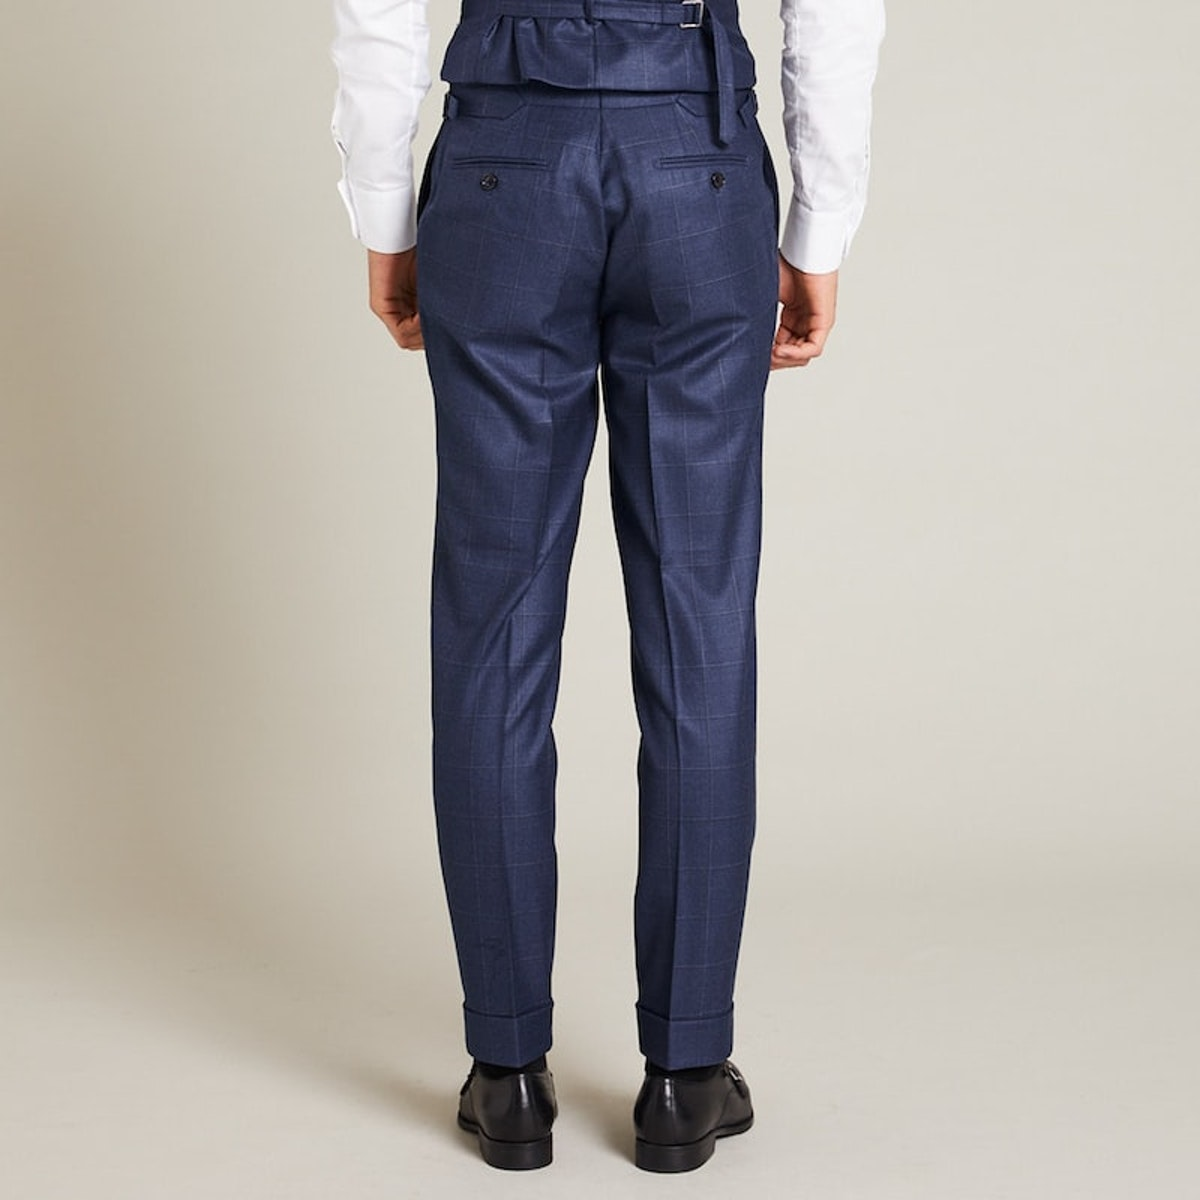 InStitchu Collection The Casey Navy Windowpane Pants